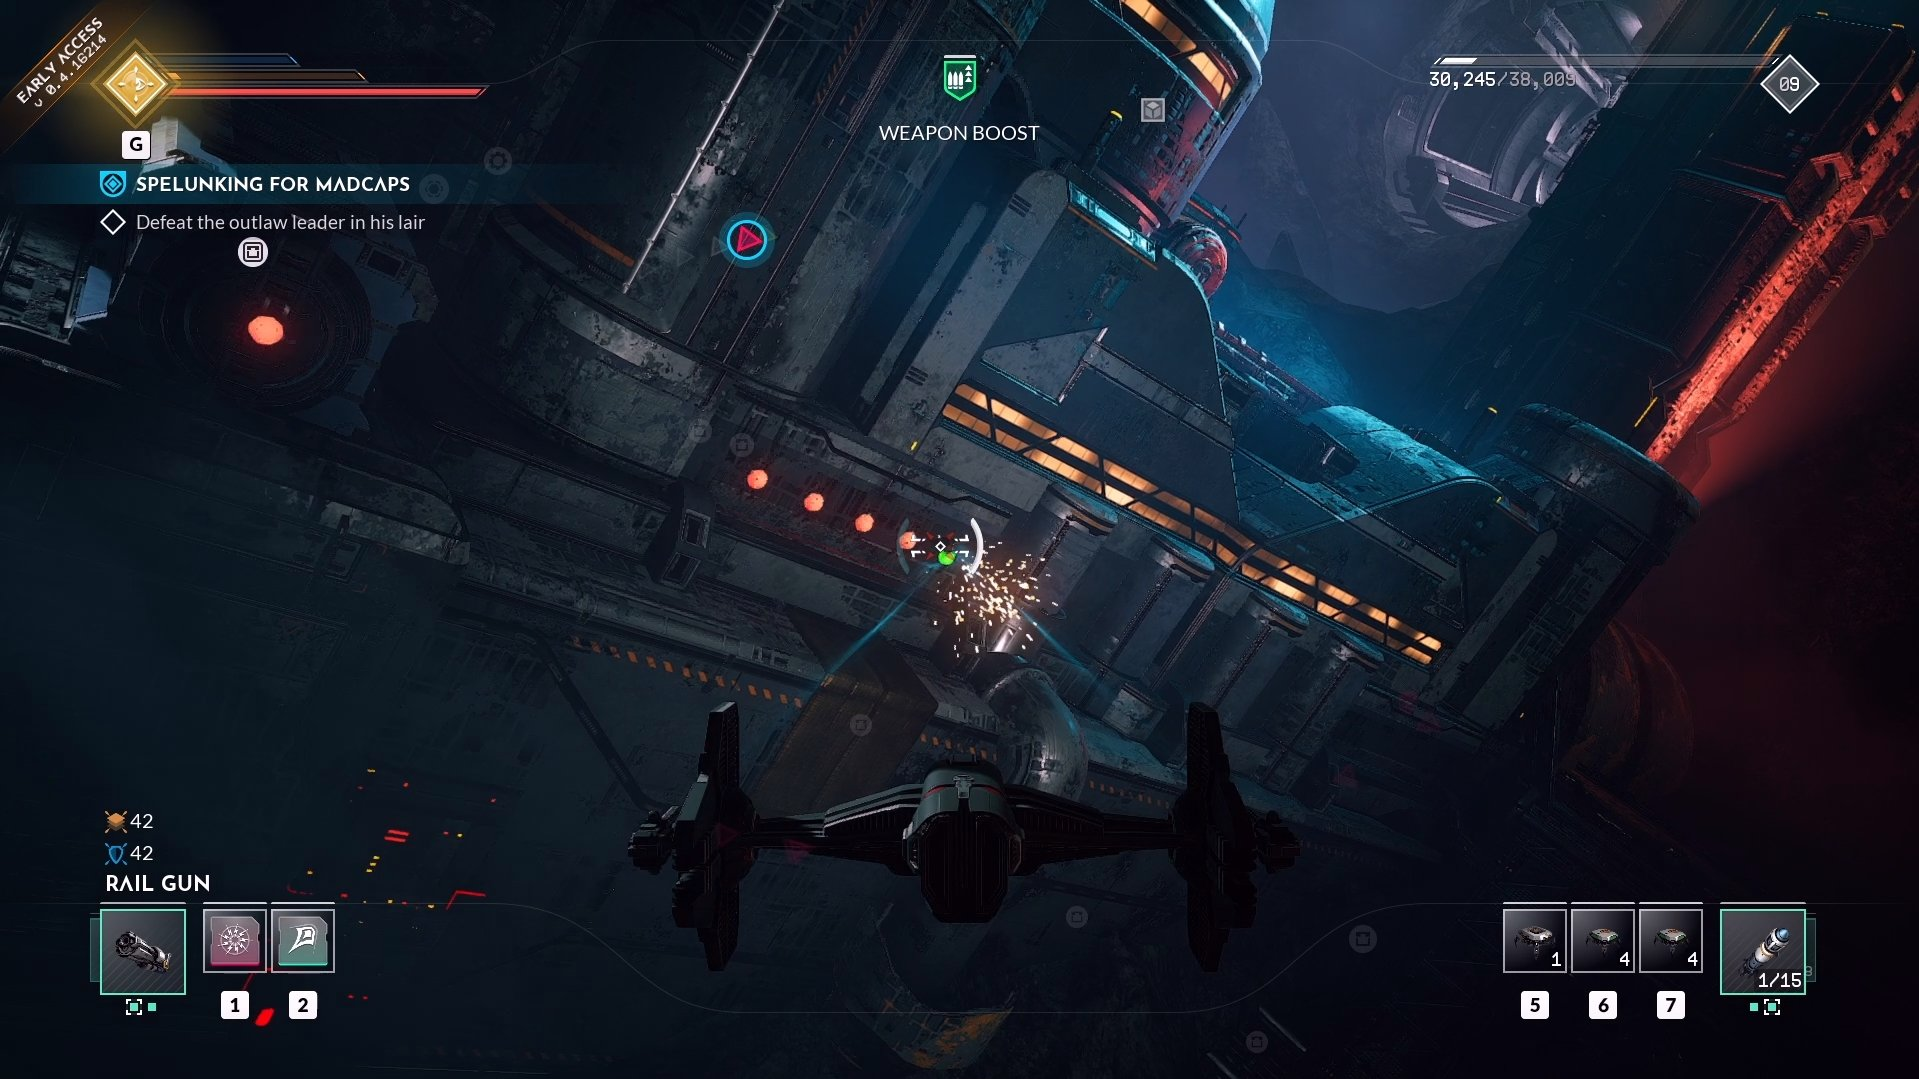 Everspace 2 - Spelunking For Madcaps Walkthrough 4